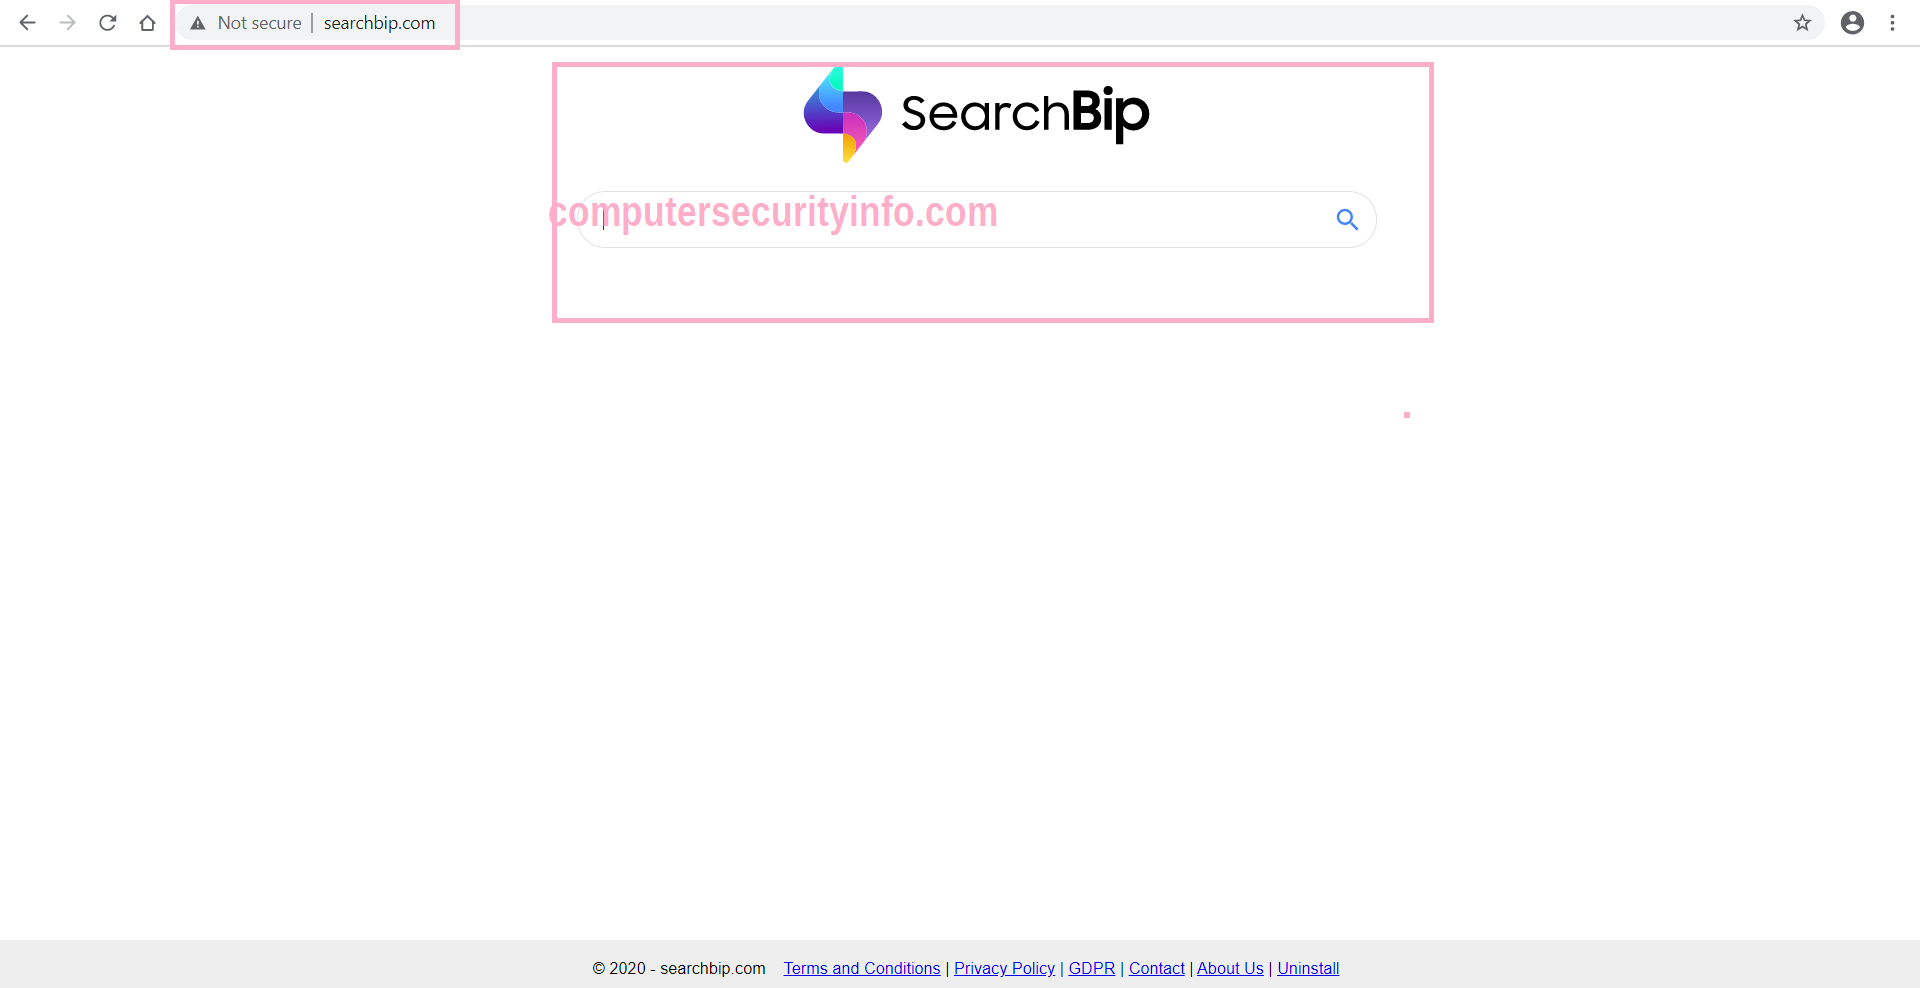 cyber security, computer security info